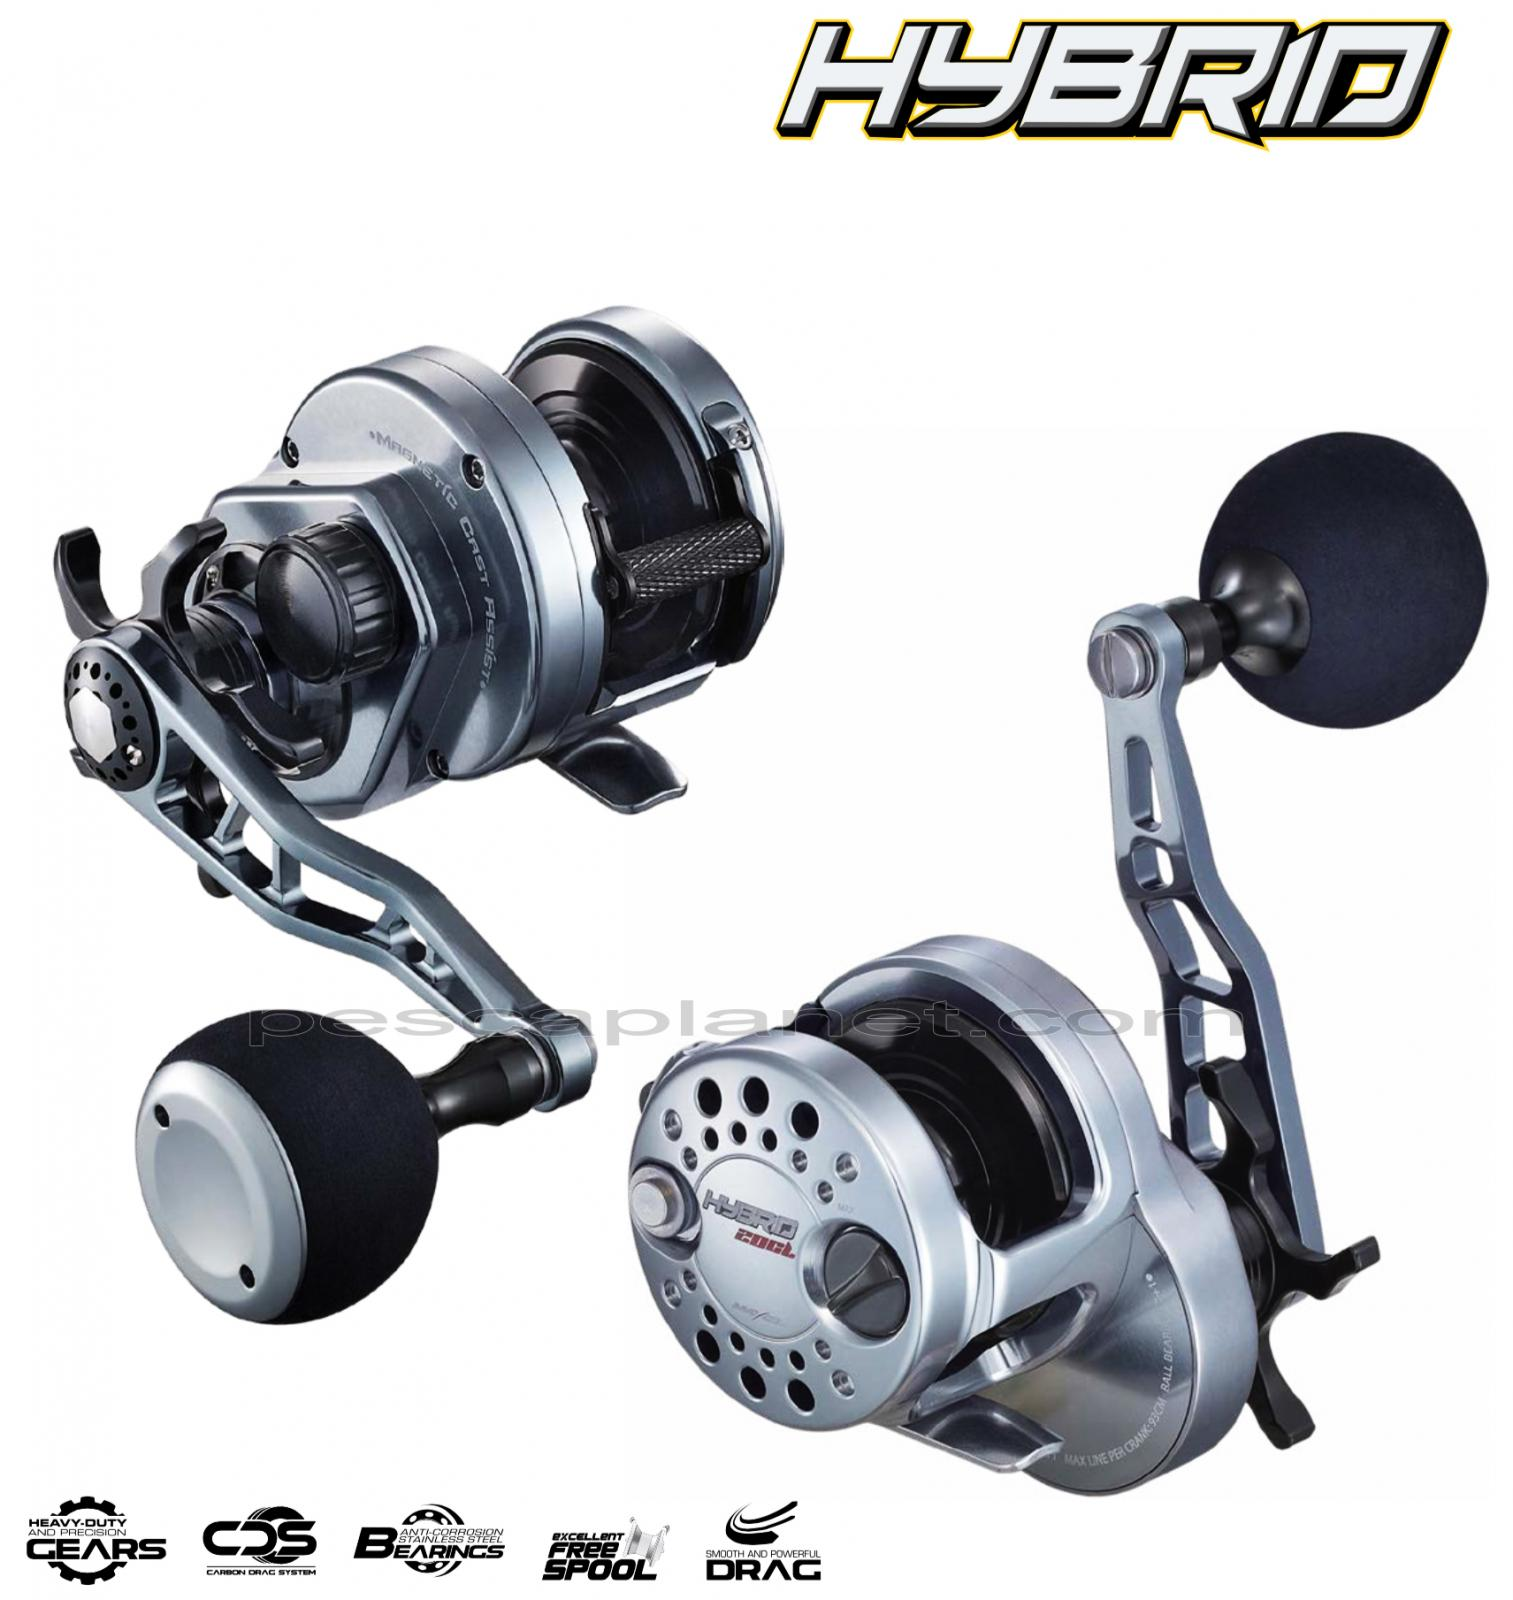 03004020 Mulinello Trabucco Hybrid pesca mare Slow Pitch vertical Jig       PPG